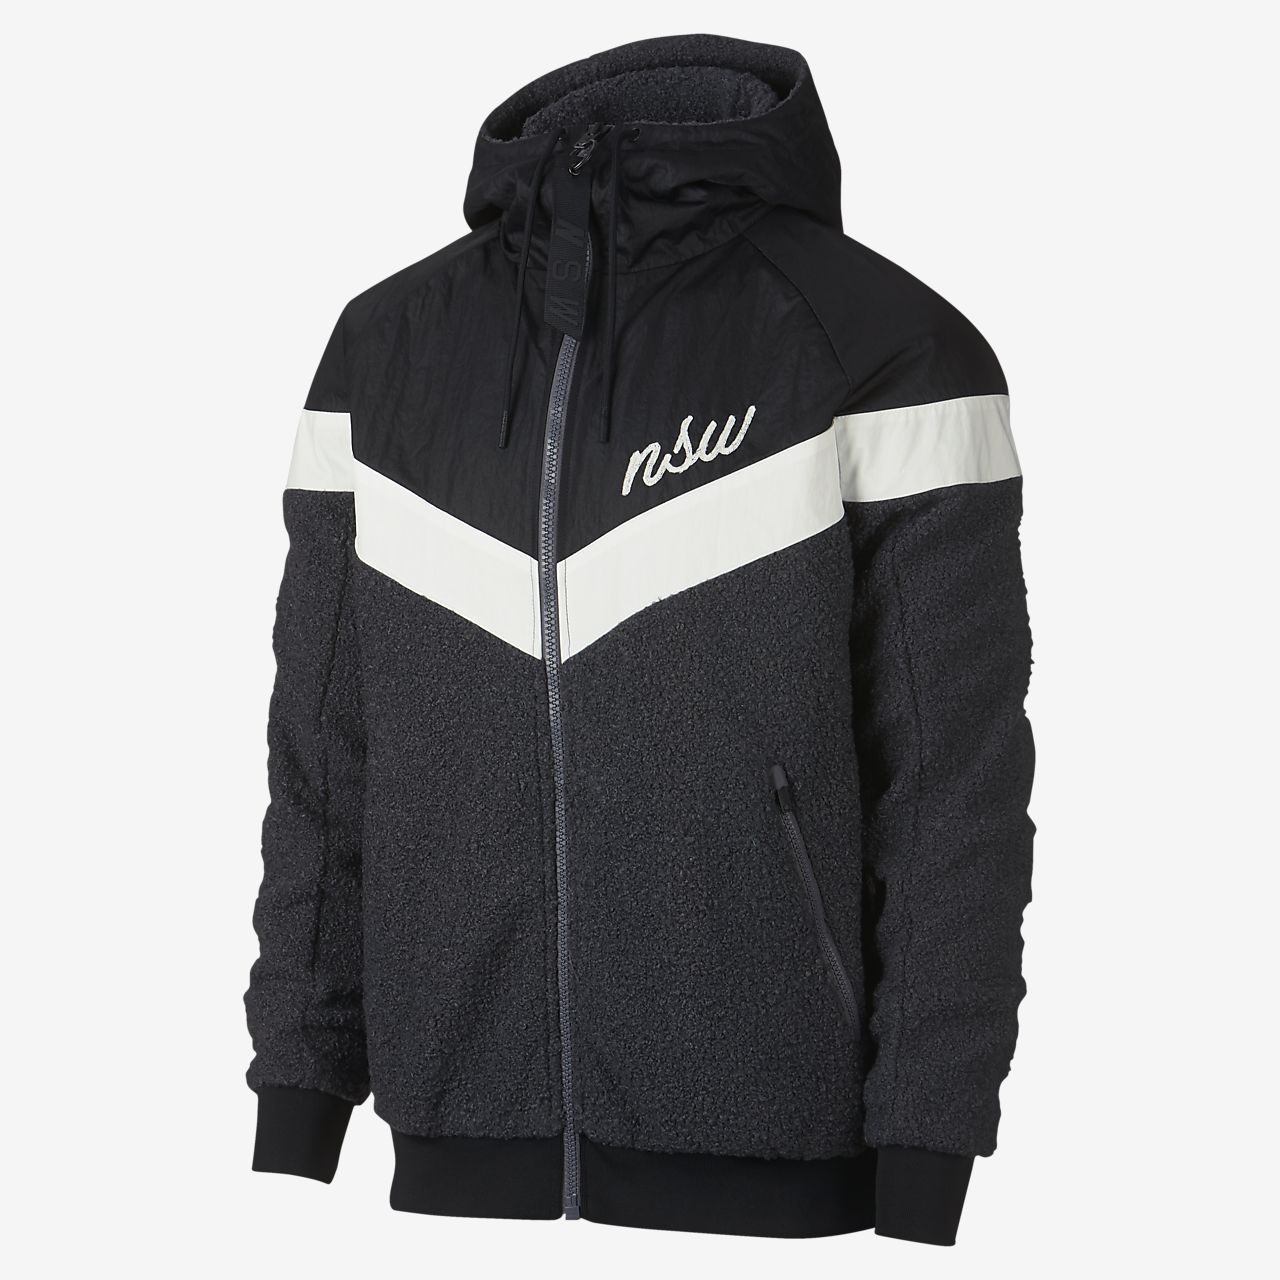 check out 5a9dc 0194c ... Nike Sportswear Windrunner Mens Sherpa Jacket